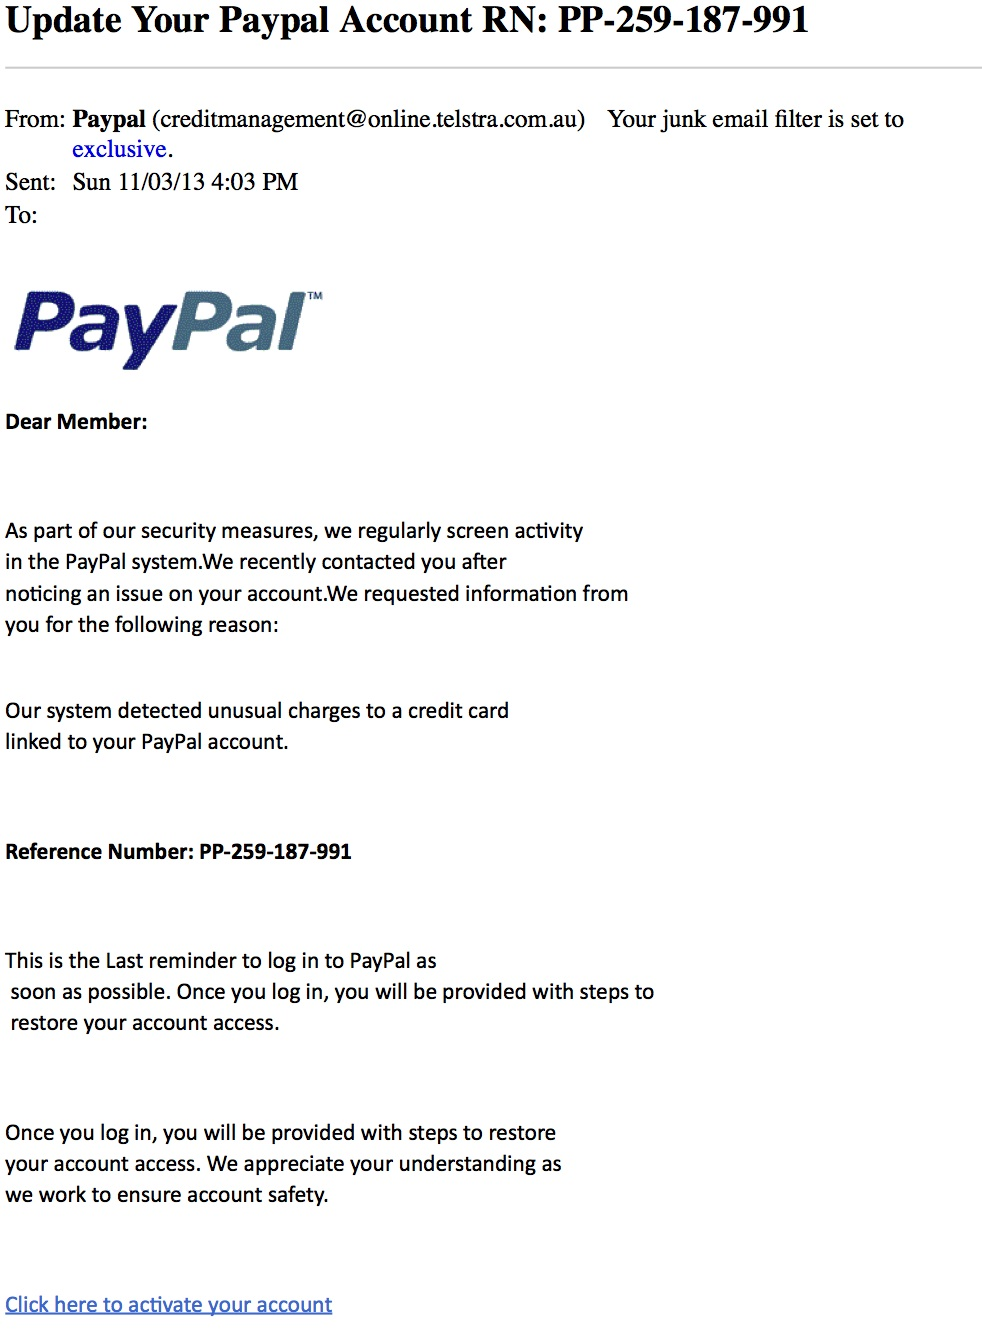 how to get a fake bank account for paypal